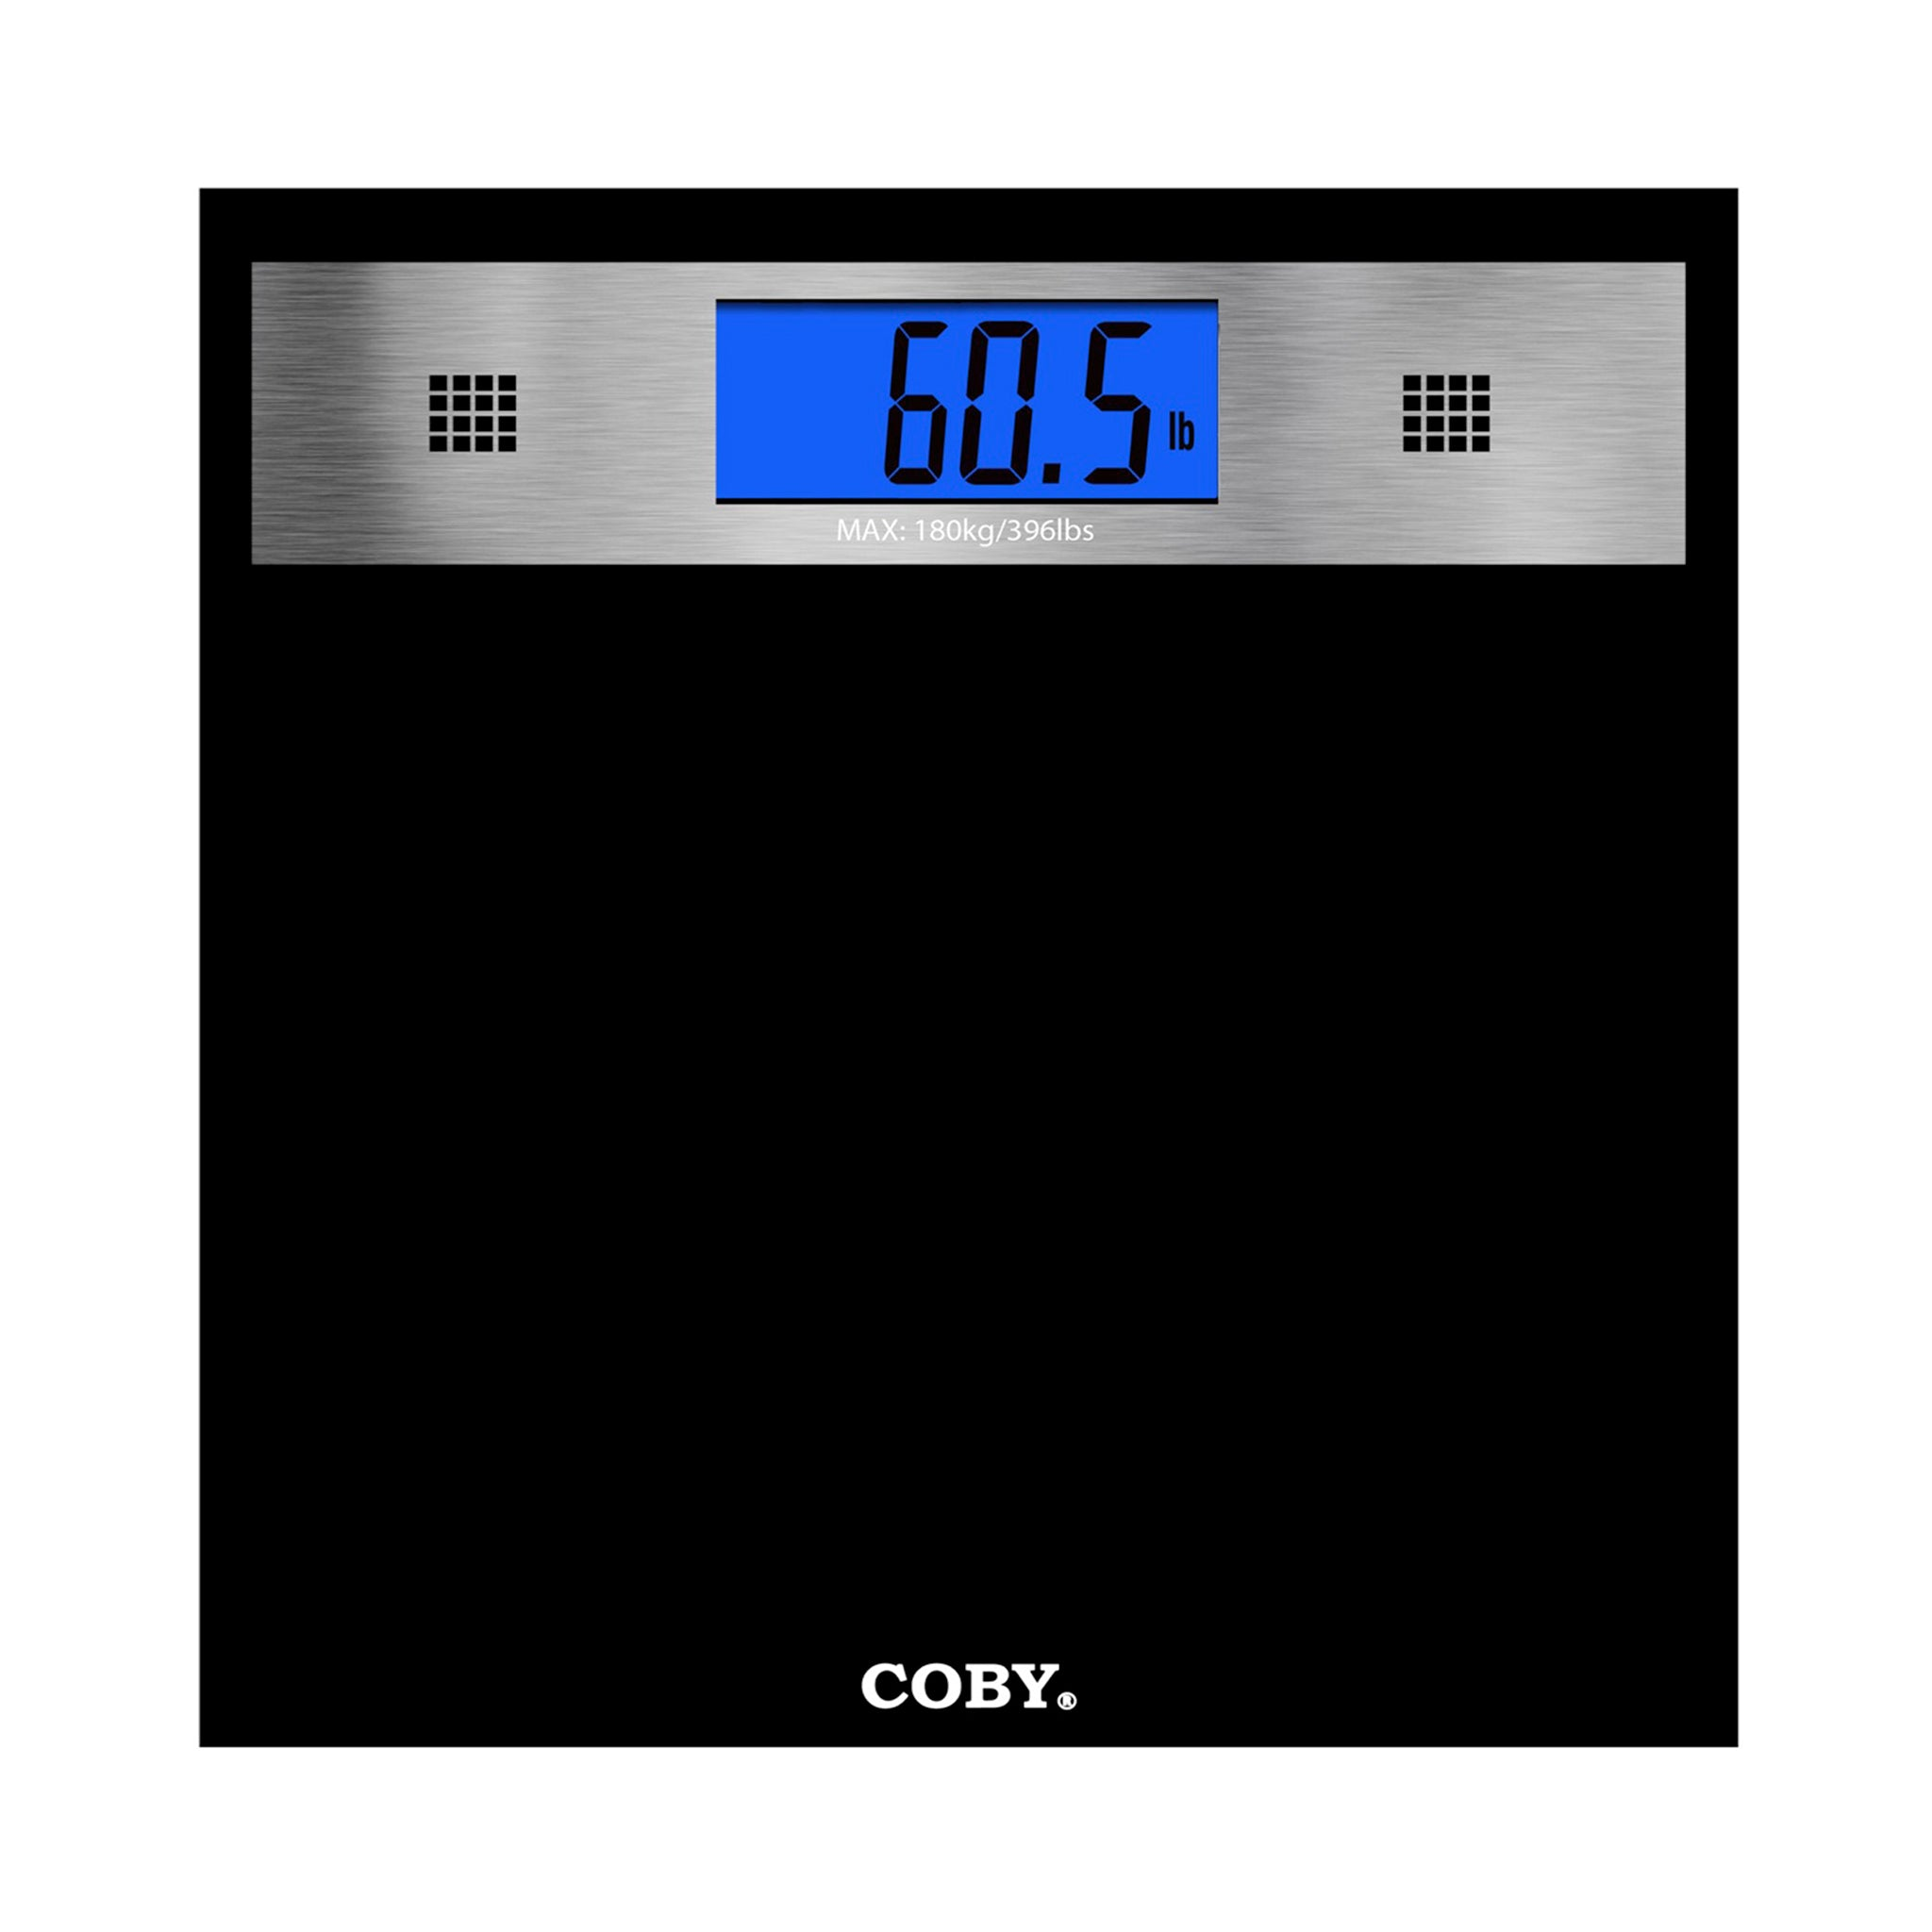 Digital Talking Bathroom Scale with Backlit Display